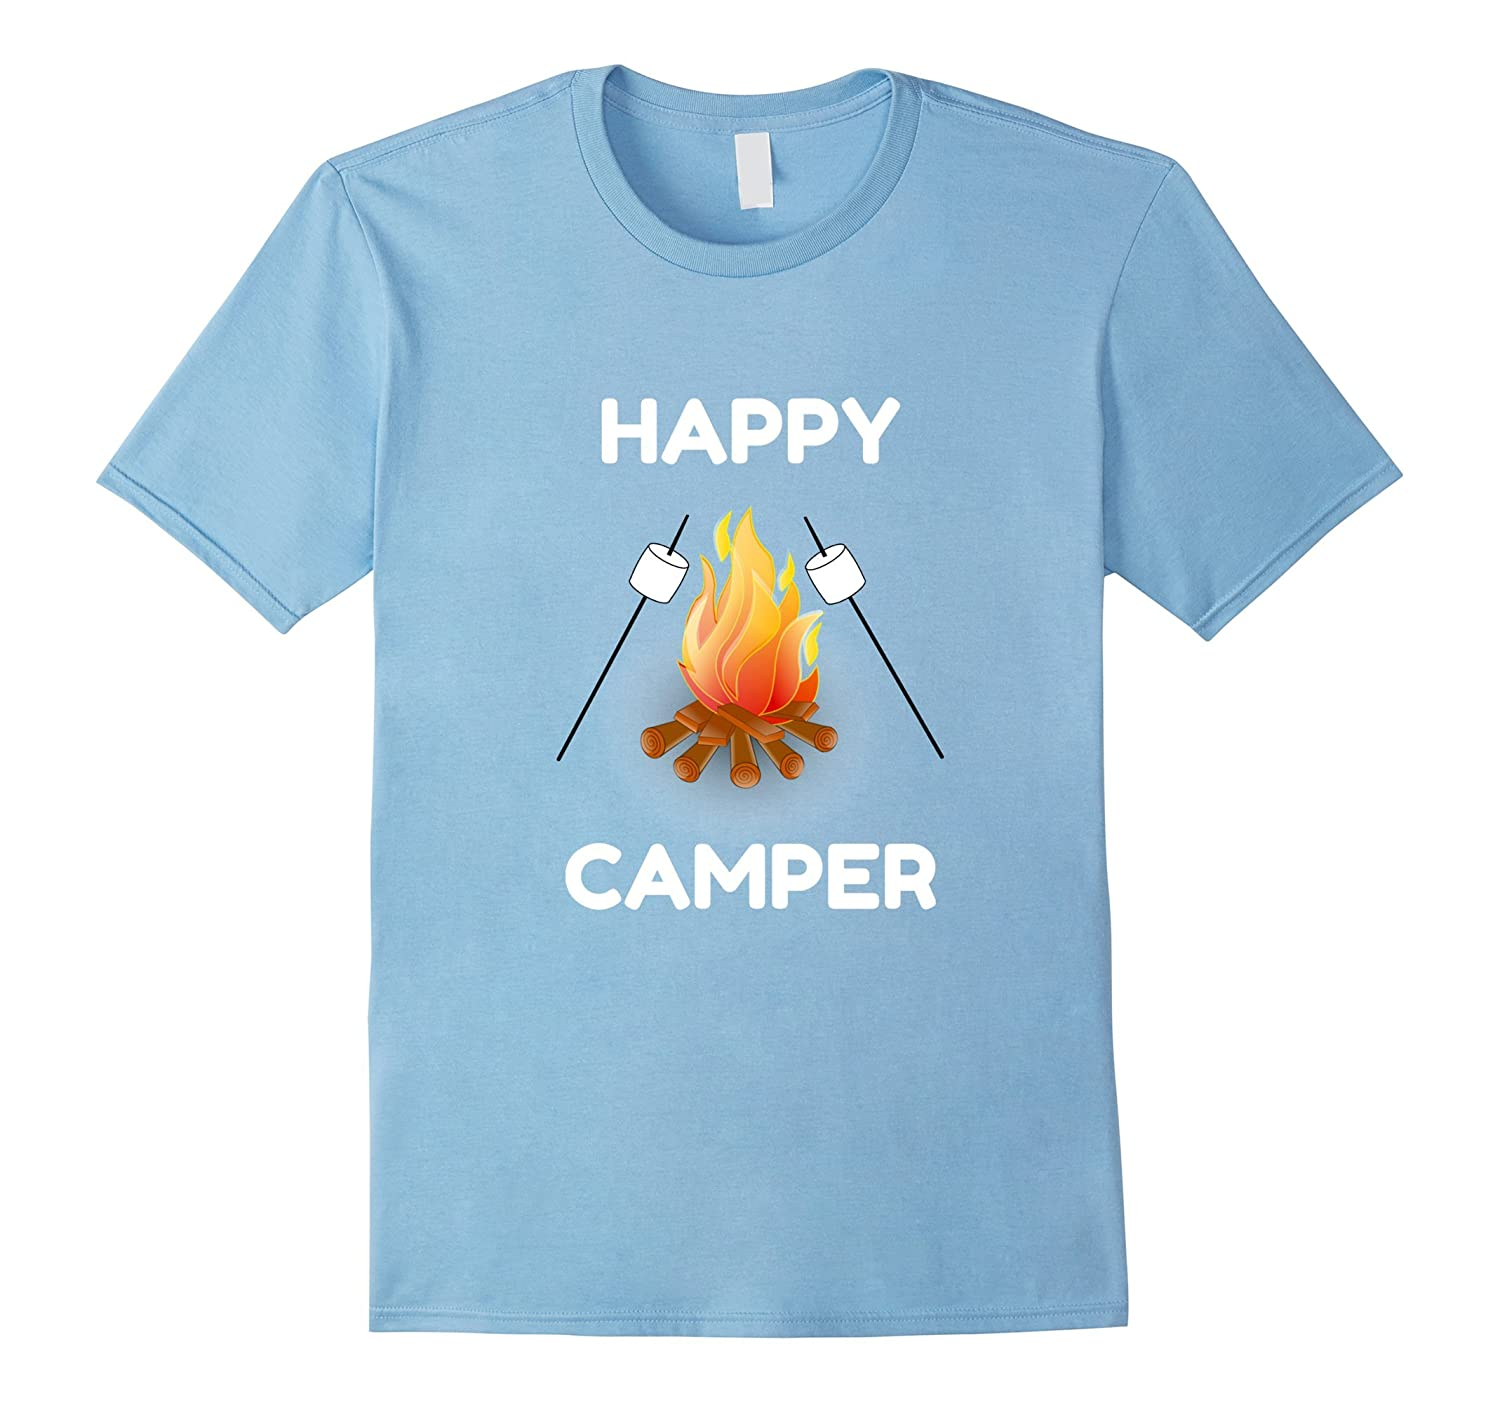 Happy Camper T Shirt Kids Women Men Smores Campfire Tshirt PL